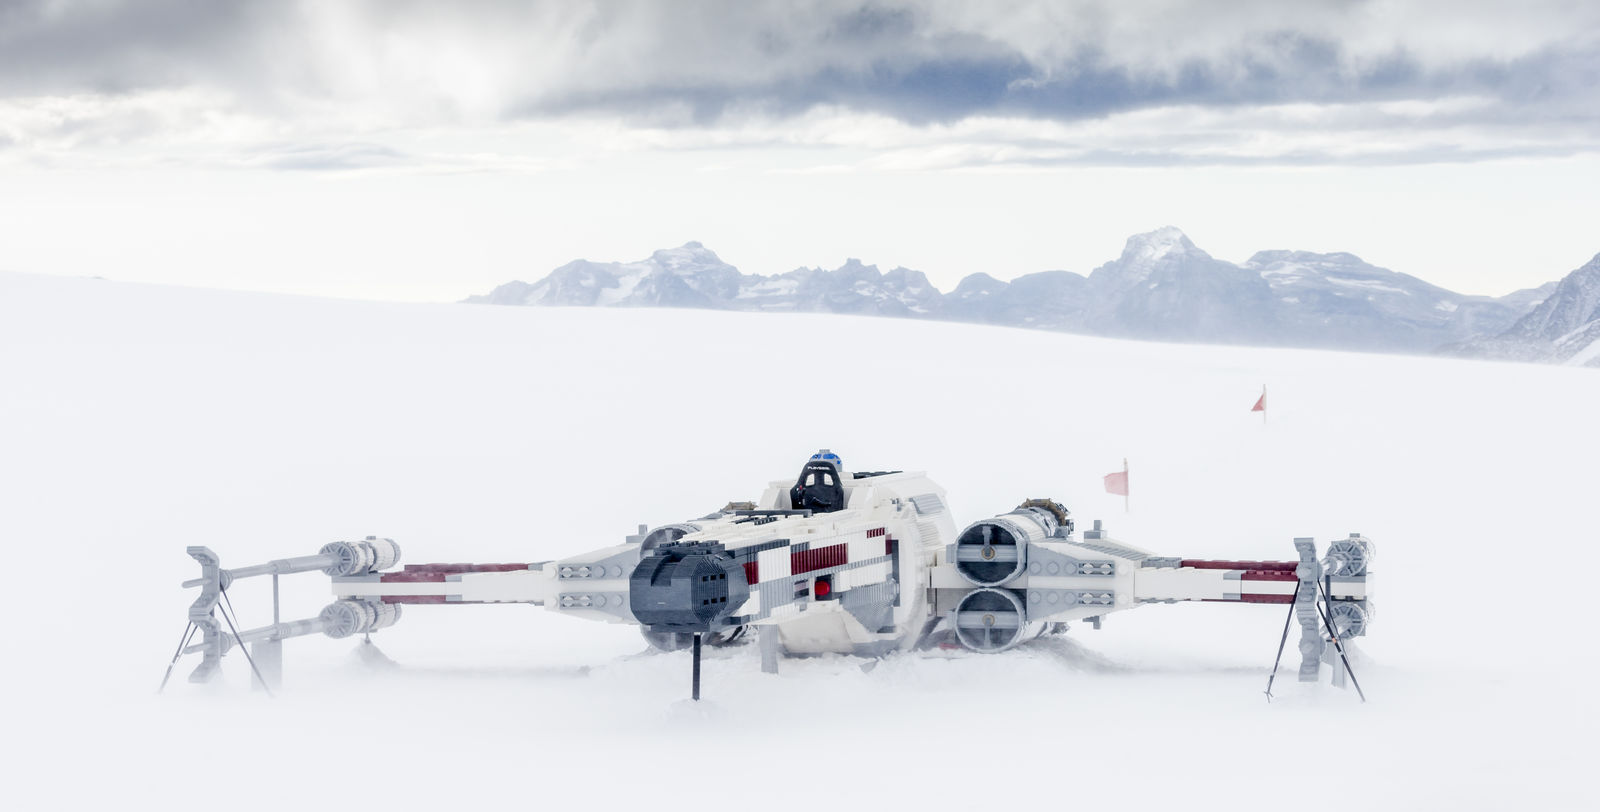 "GRINDELWALD, SWITZERLAND - OCTOBER 04: A LEGO Star Wars X-Wing Starfighter is seen at the Jungfraujoch 'Top of  Europe' in Switzerland at the ""Triple Force Friday"" on October 04, 2019, near Grindelwald, Switzerland. The lifesize LEGO Star Wars X-Wing Starfighter is built out of 2,5 million LEGO bricks and has a size of 10 x 10 meter.  (Photo by Jan Hetfleisch/Getty Images for the LEGO Group)"